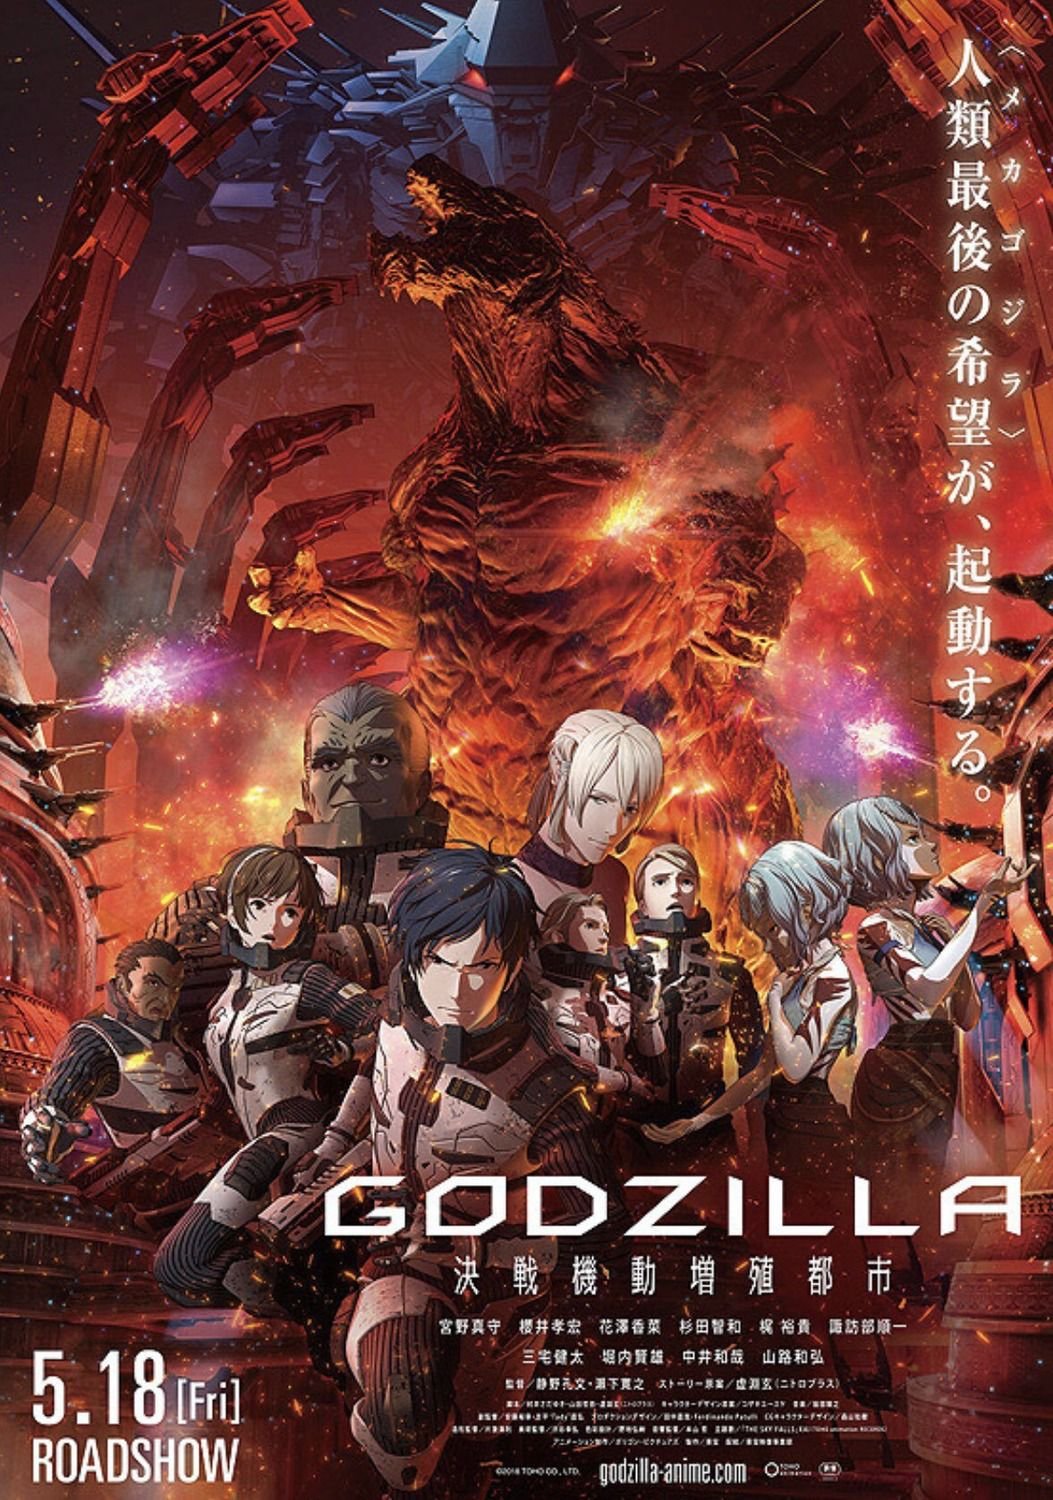 Godzilla City on the Edge of Battle - Gojira Kessen kido Zoshoku Toshi (2018) - animated film poster anime